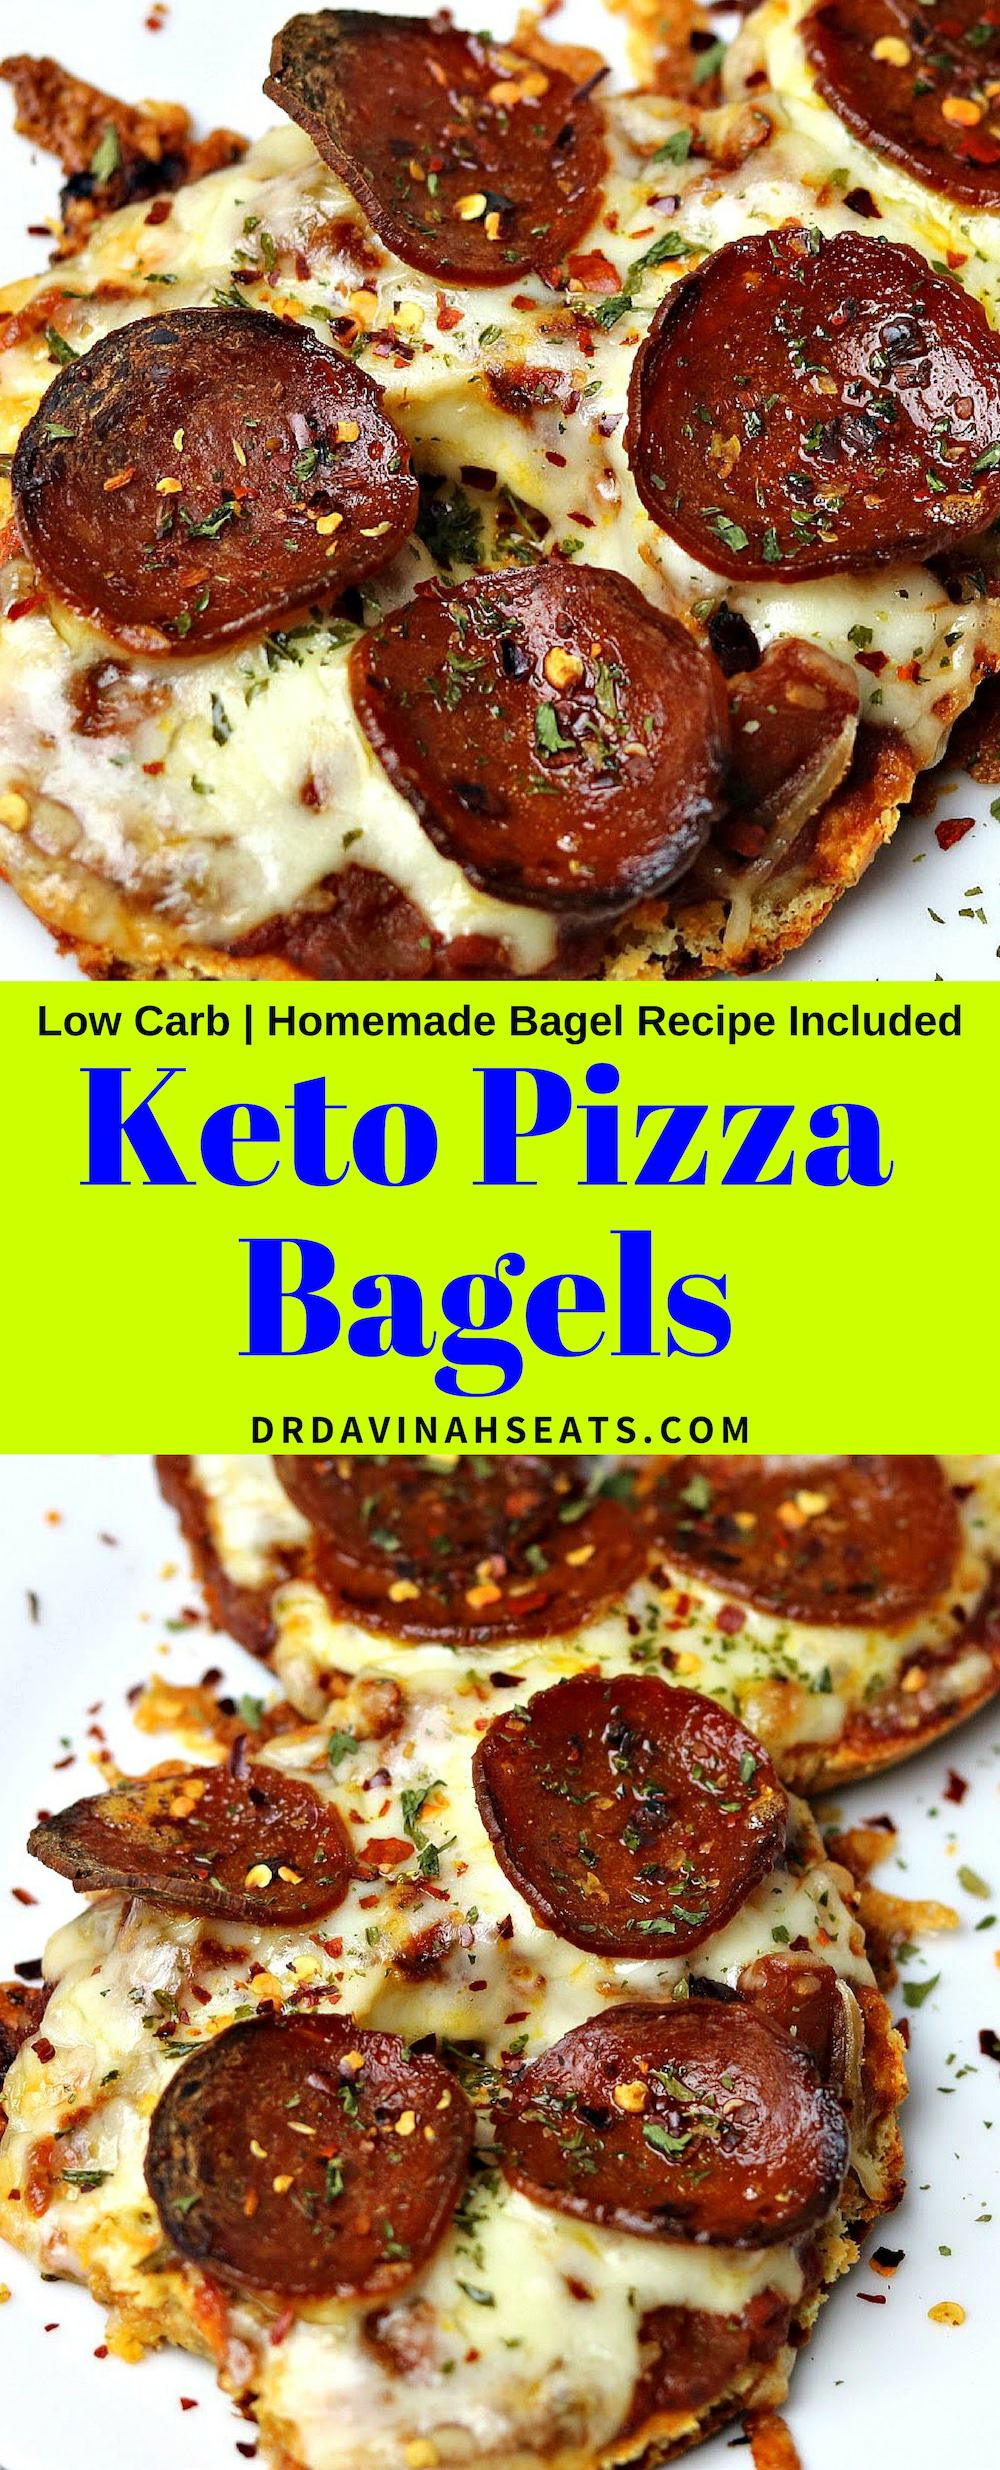 A quick Keto-friendly, low carb and grain-free recipe for pizza bagels that includes fathead dough bagels and tips for popular pizza ingredients. #ketopizza #ketofood #ketomeal #pizzabagels #pizzabagel #ketolunch #grainfree #almondflour